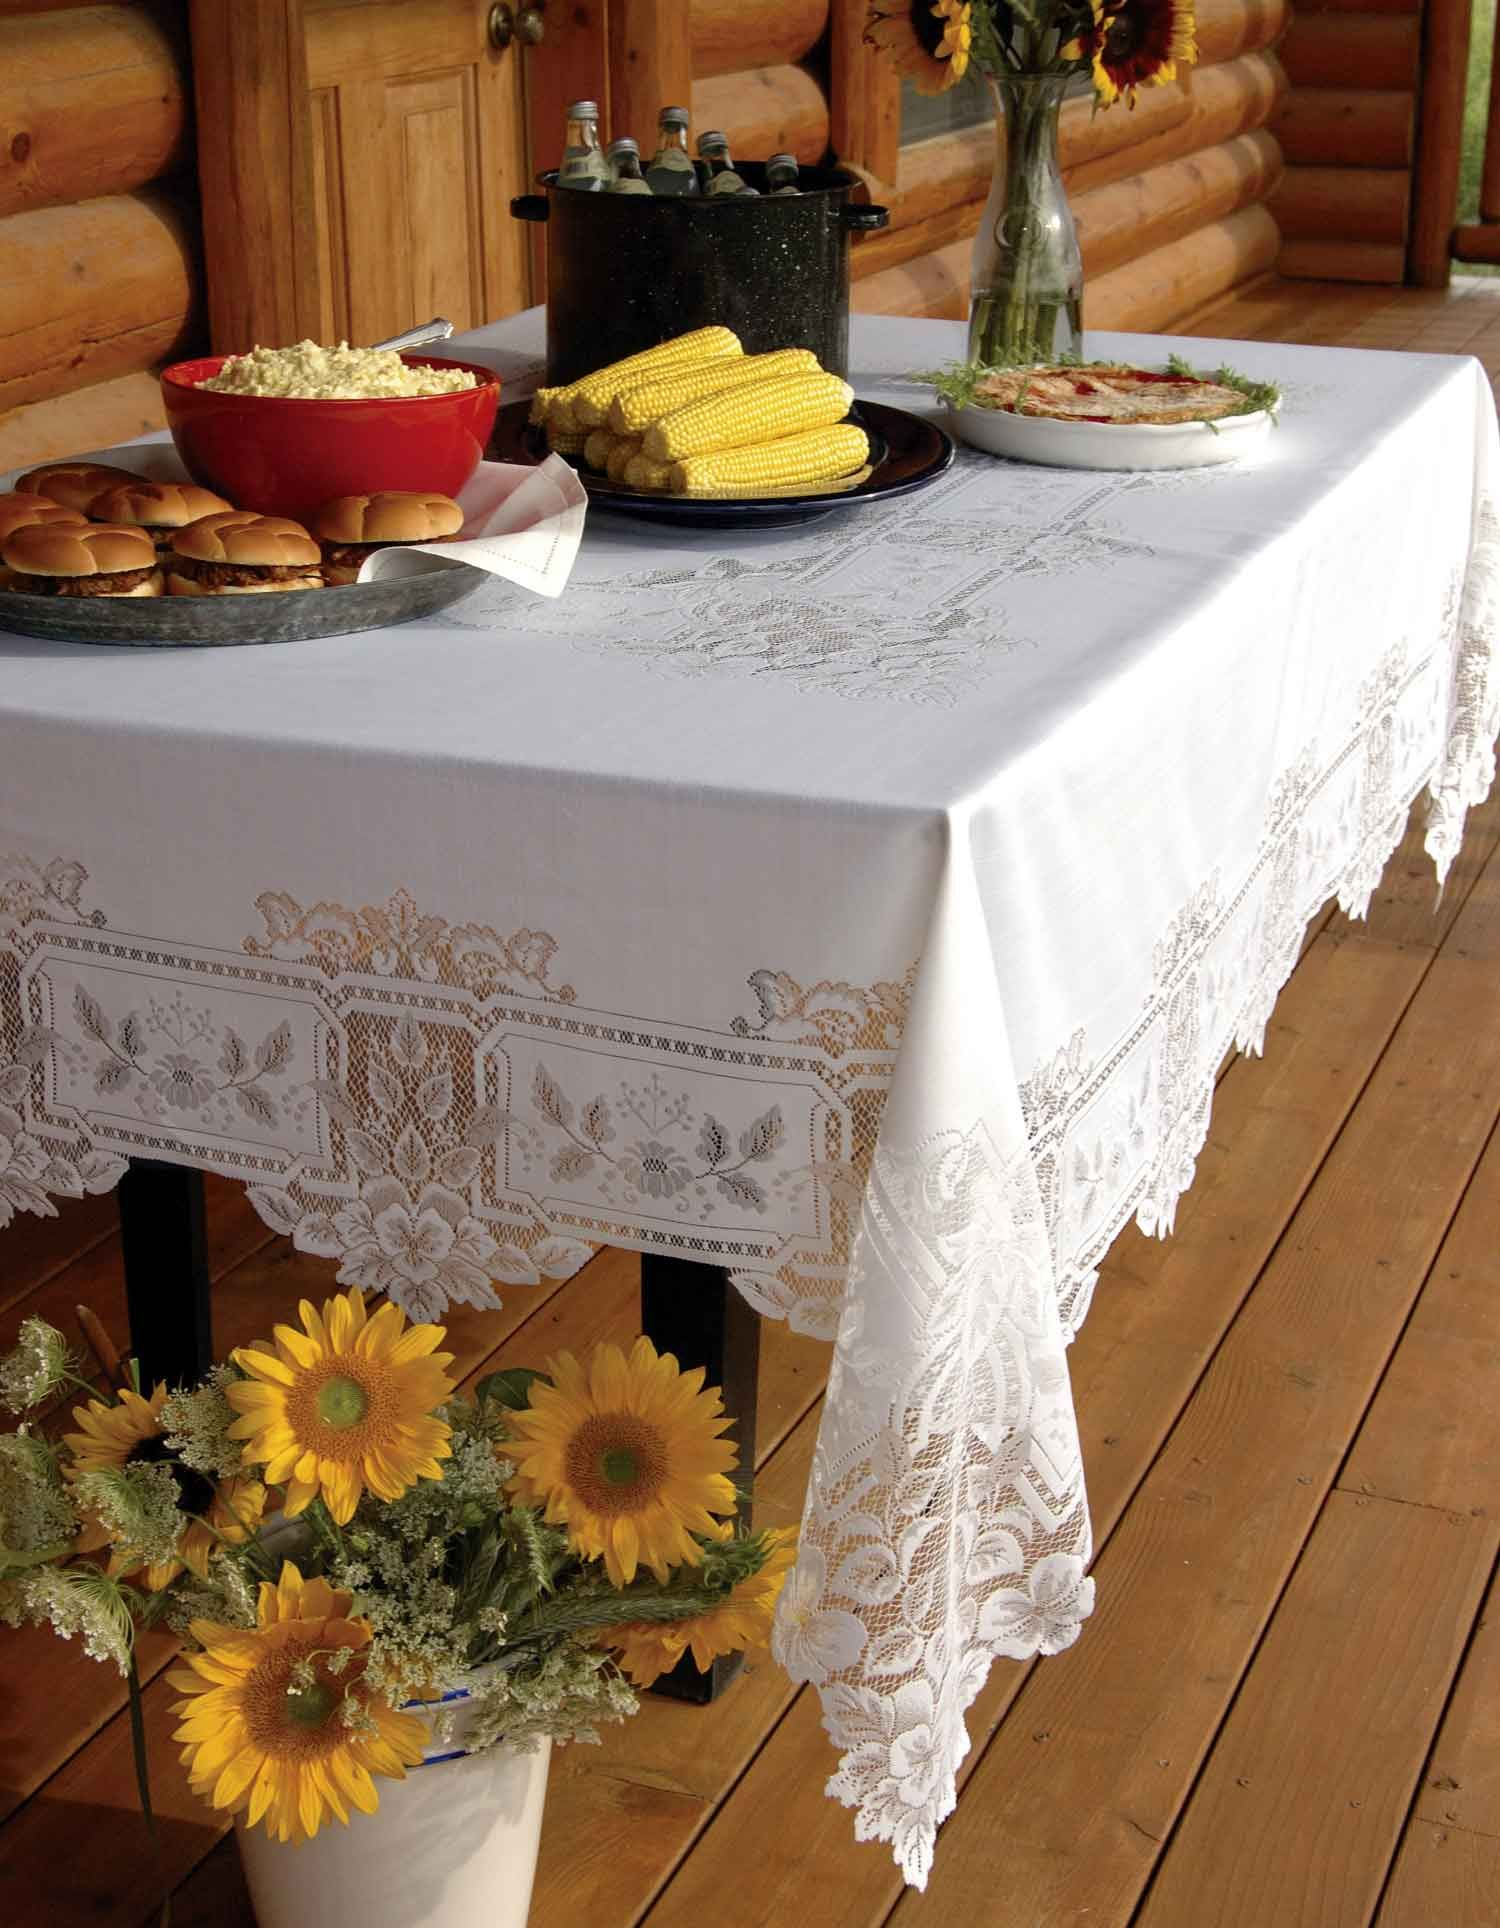 Table Cloths are an important element in any room décor